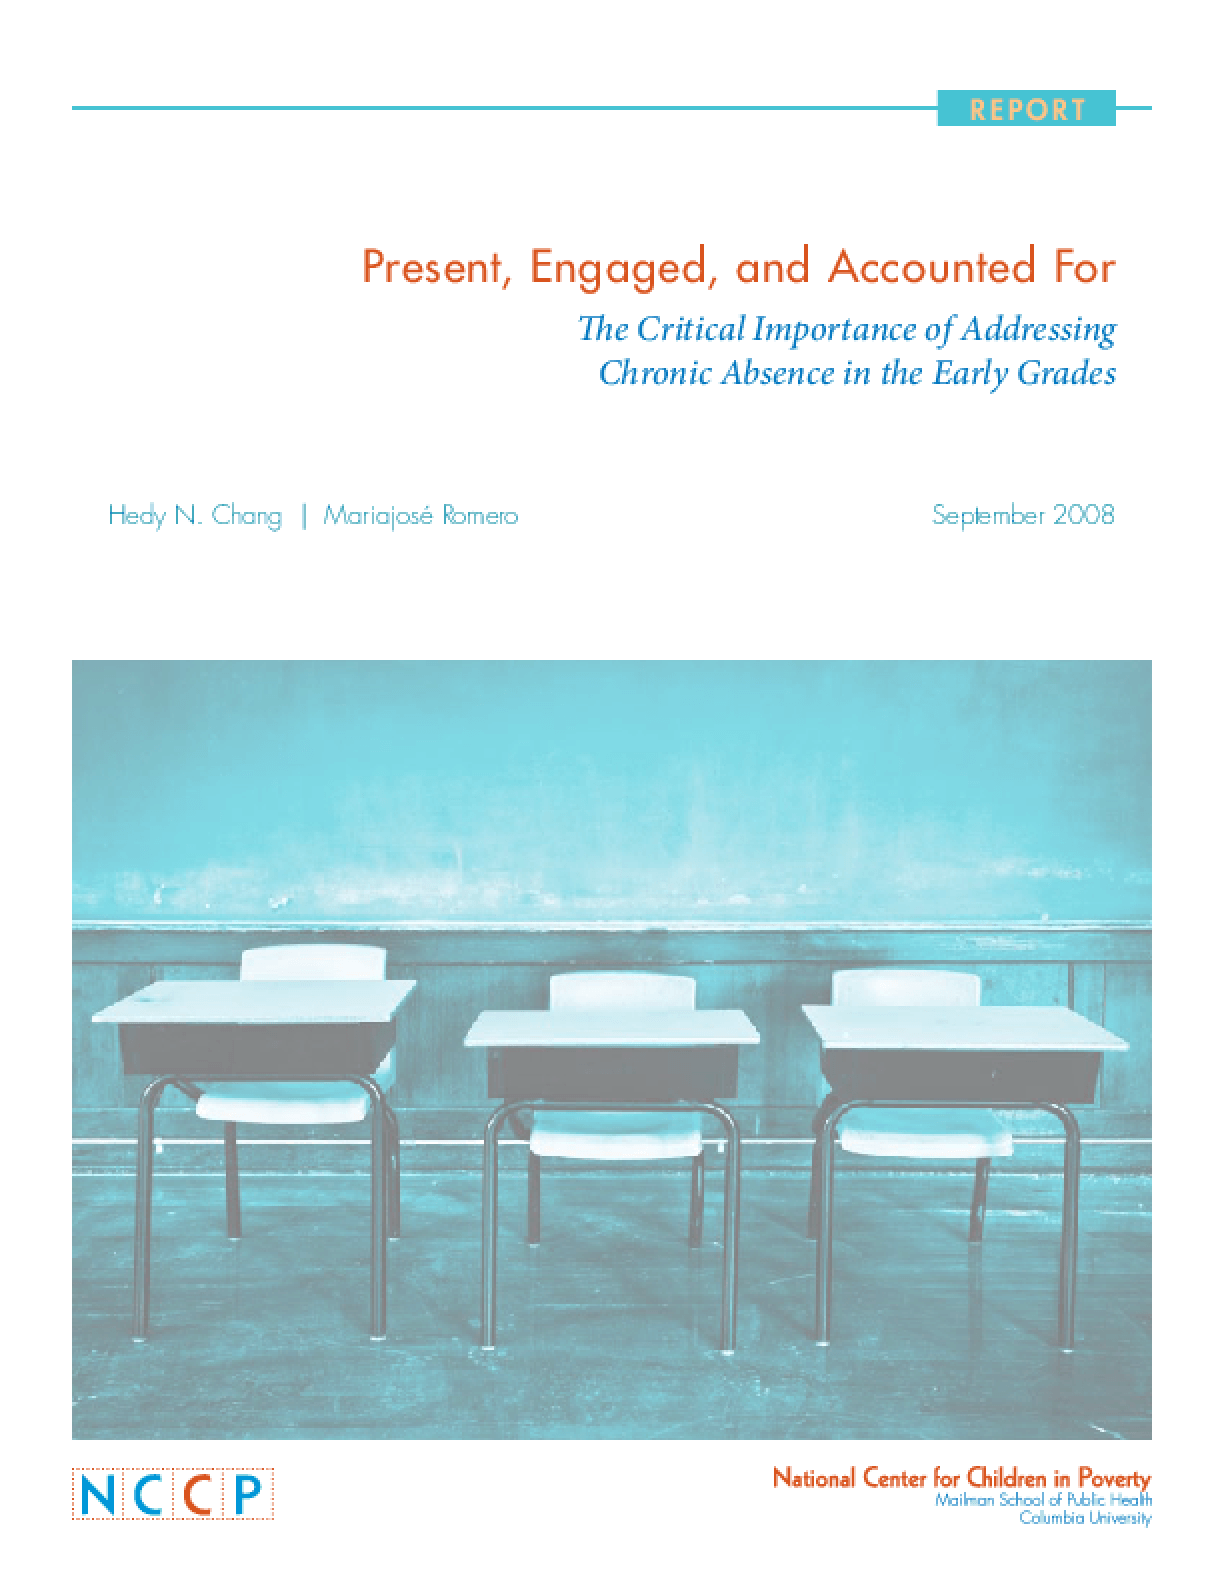 Present, Engaged, and Accounted For: The Critical Importance of Addressing Chronic Absence in the Early Grades